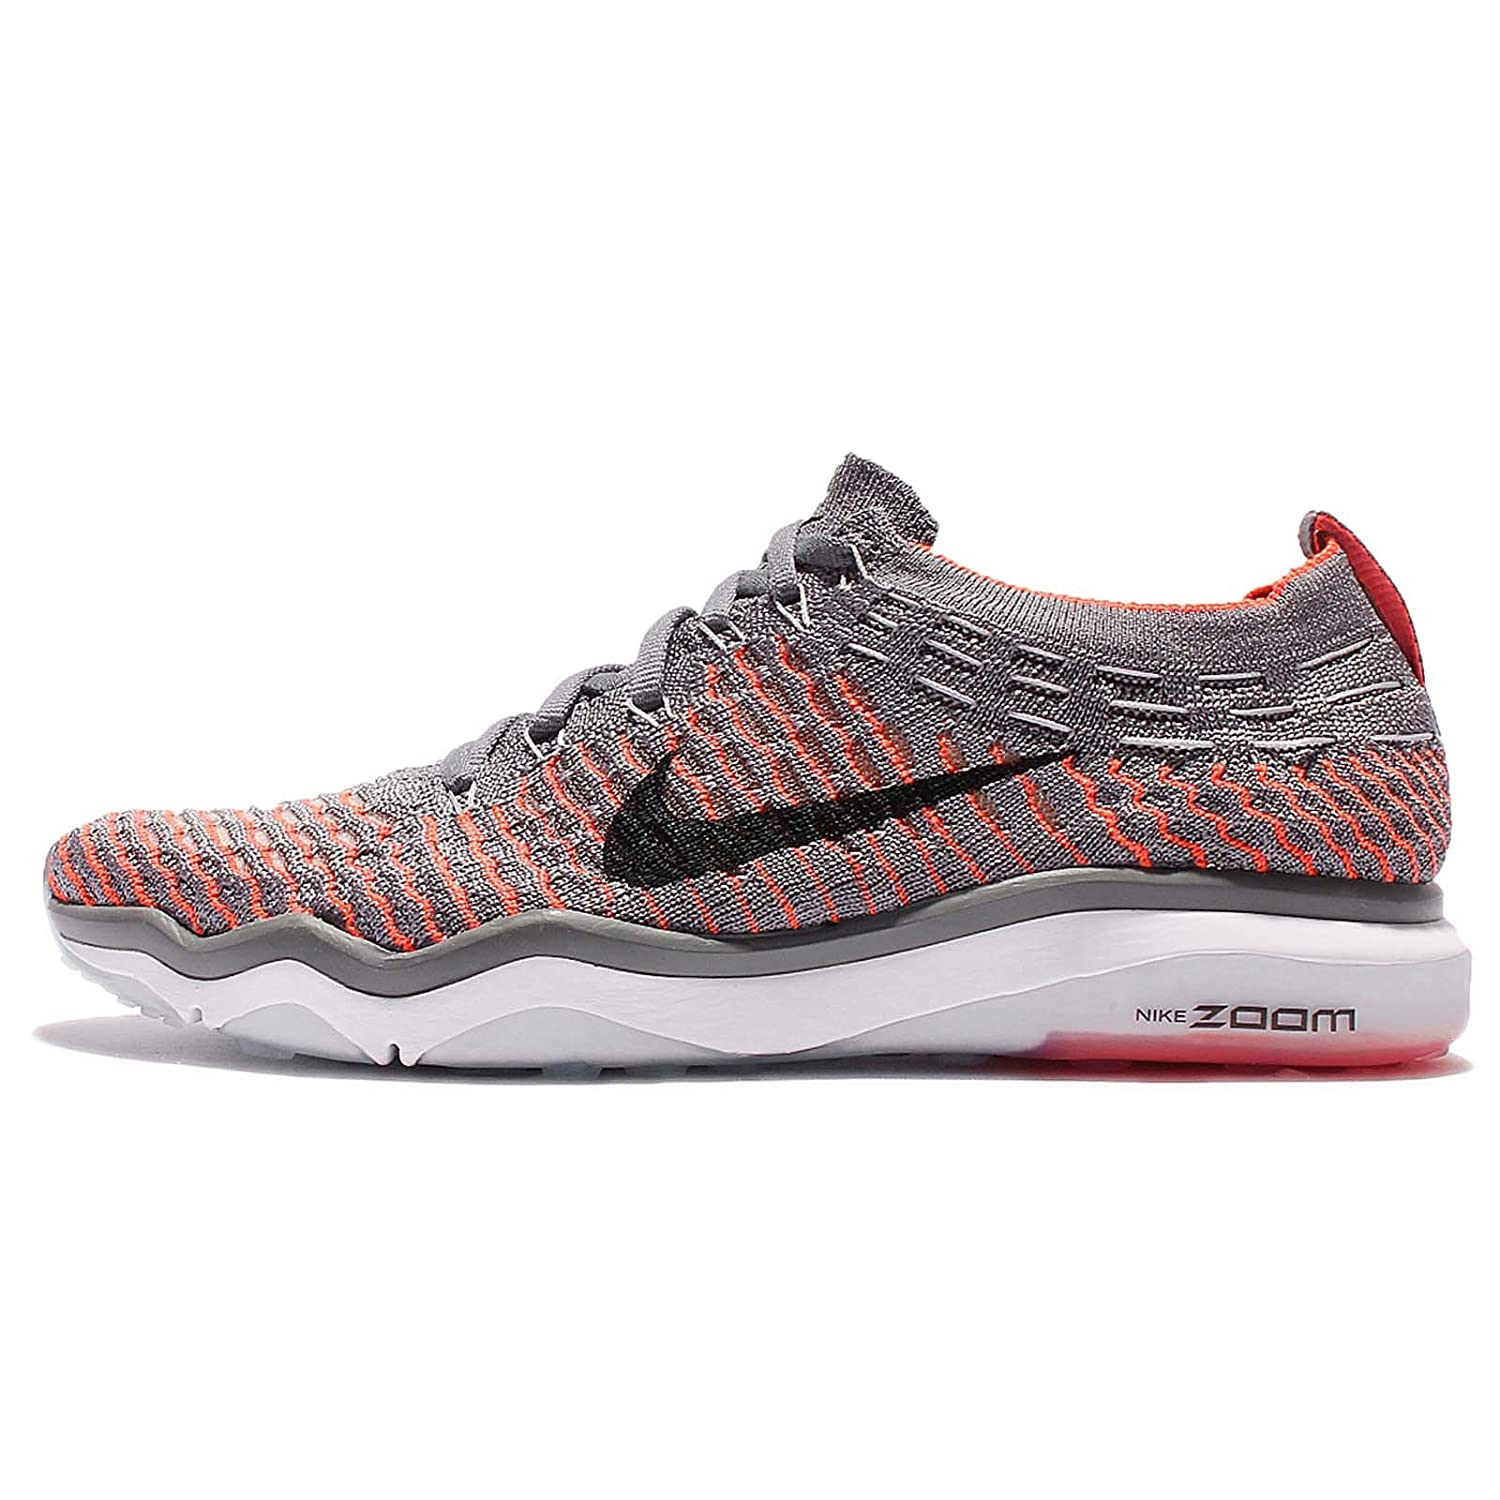 NIKE Women's Air Zoom Fearless Flyknit Running Shoes B008OQVG46 7.5 B(M) US|Cool Grey/Black-total Crimson